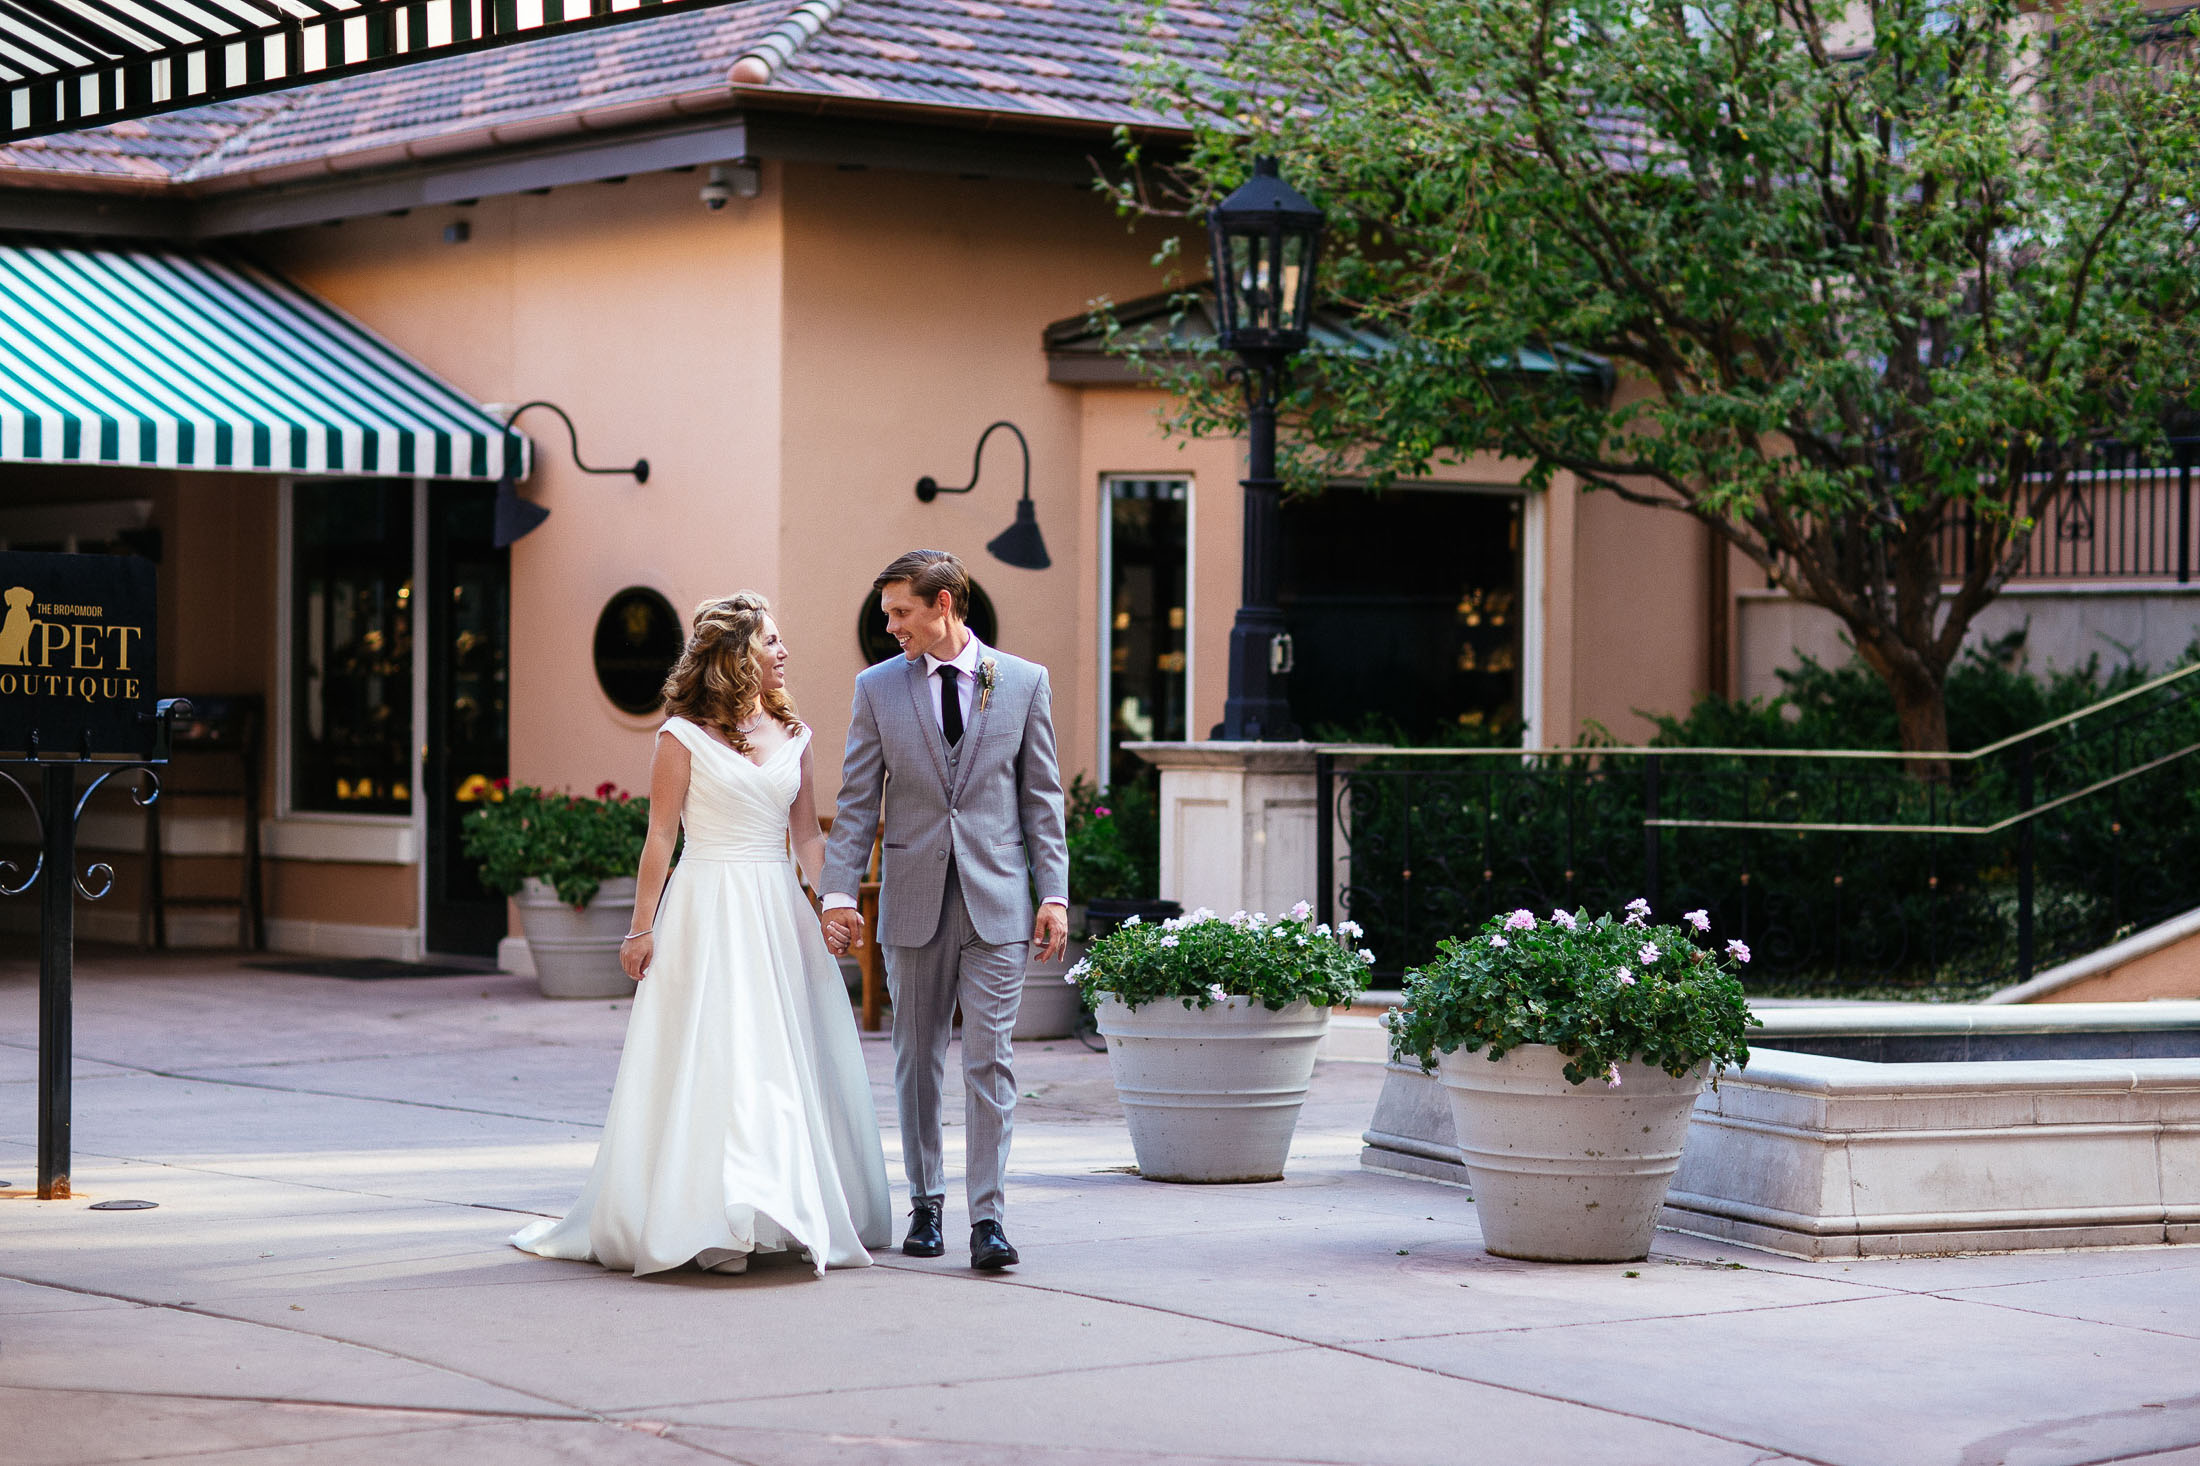 Bride and groom walk together through a shopping plaza at The Broadmoor.